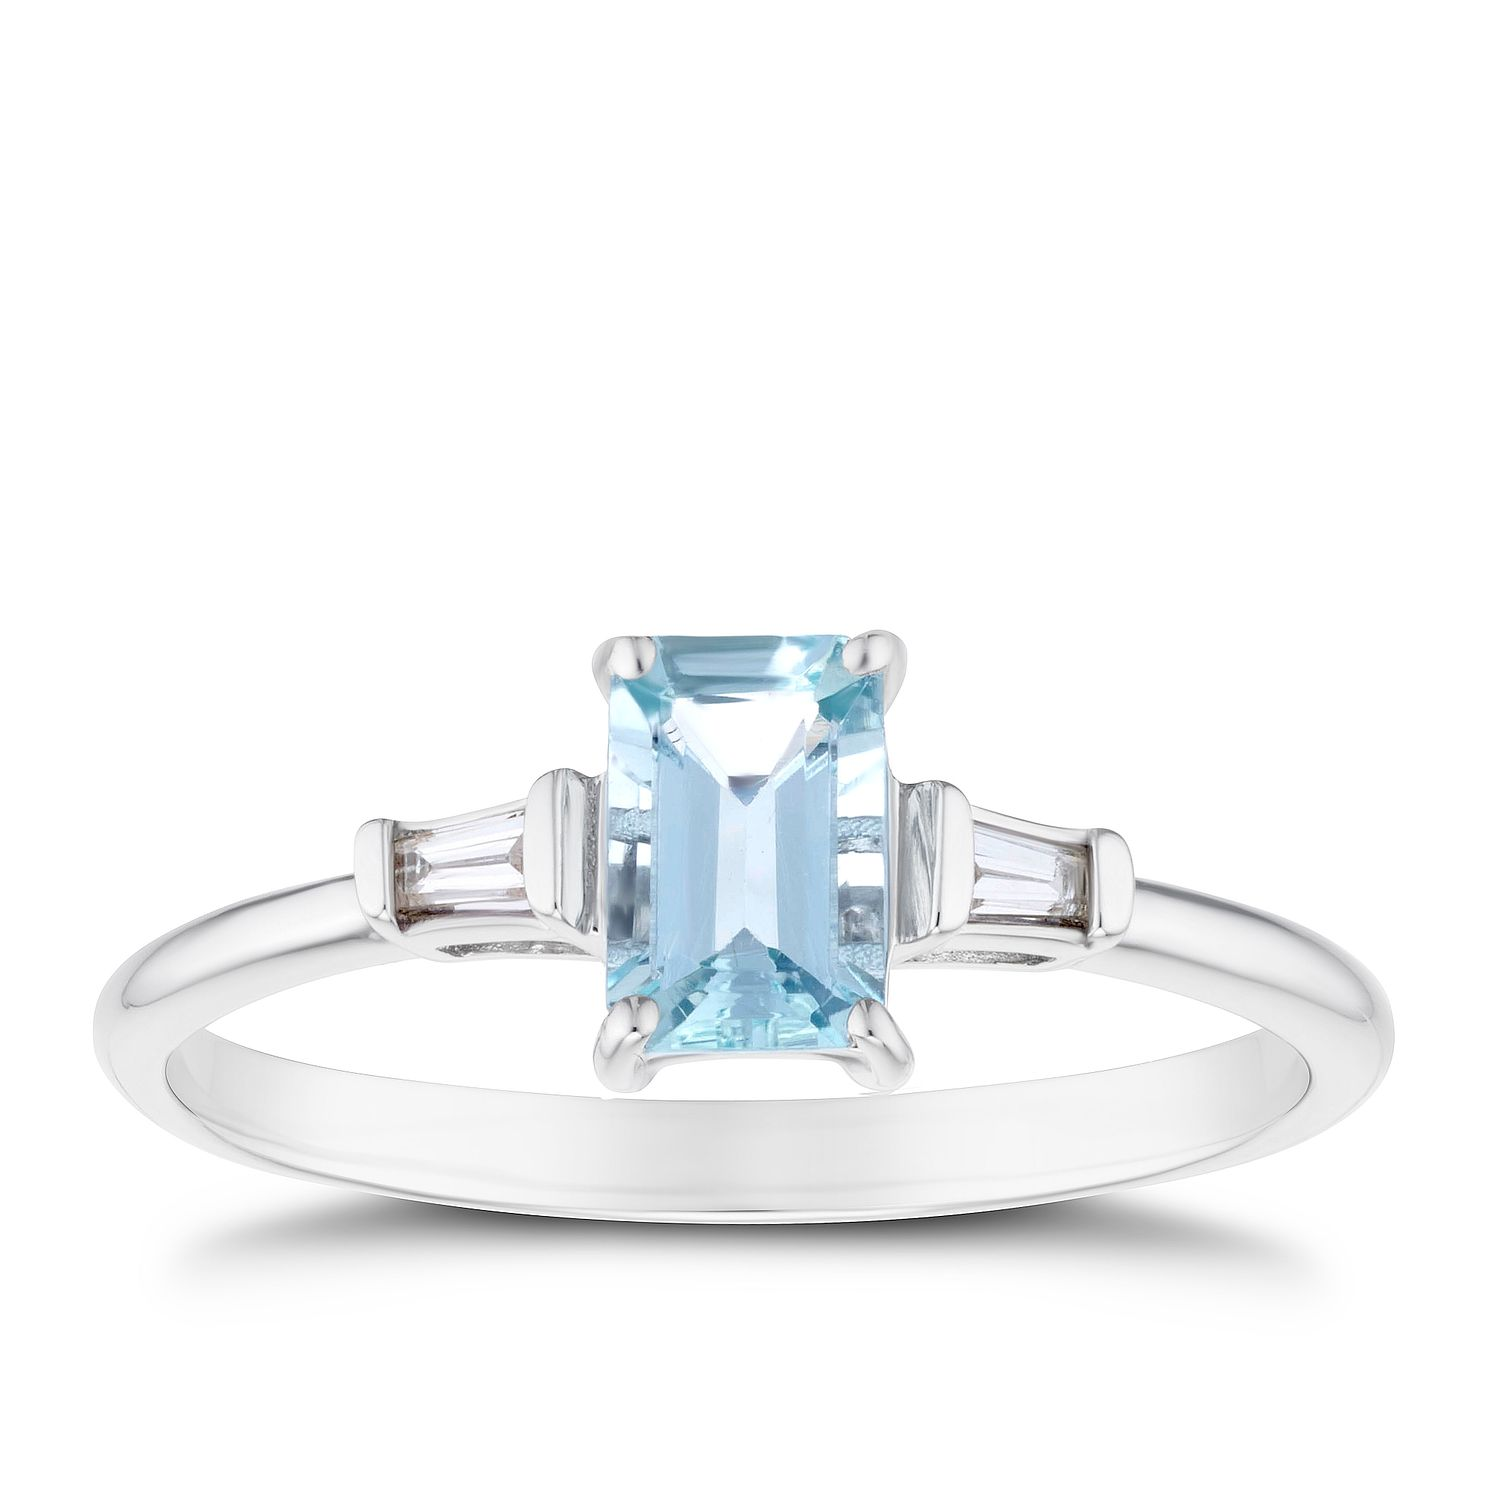 9ct White Gold Aquamarine & Baguette Diamond Ring - Product number 3430049